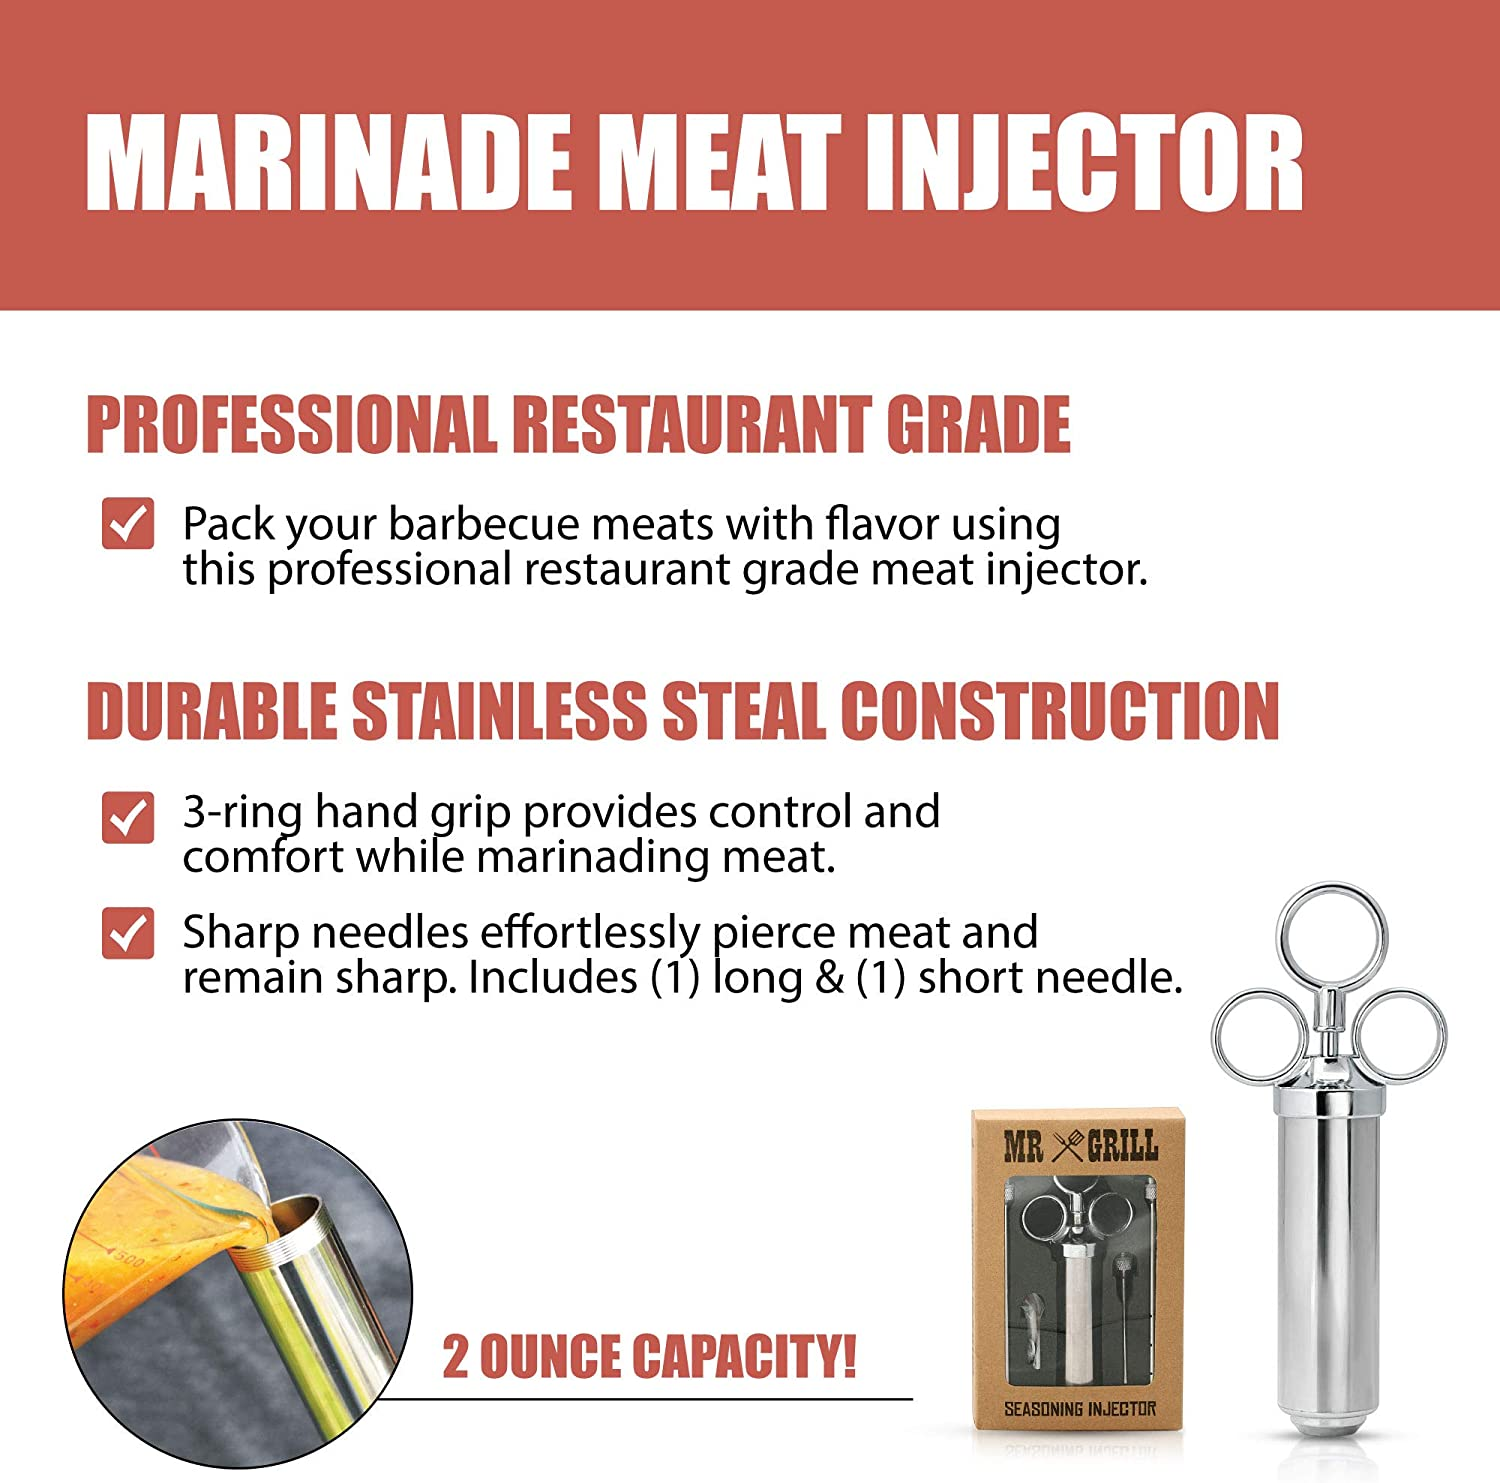 GRILLHOGS Marinade Meat Injector Kit, 304 Premium Stainless Steel BBQ Grill Syringe, Great Basting Tool for Larger Cuts of Meat Like Turkey, Grilling Gifts for Men, 2-Oz Capacity Barrel with 3 Needles: Kitchen & Dining